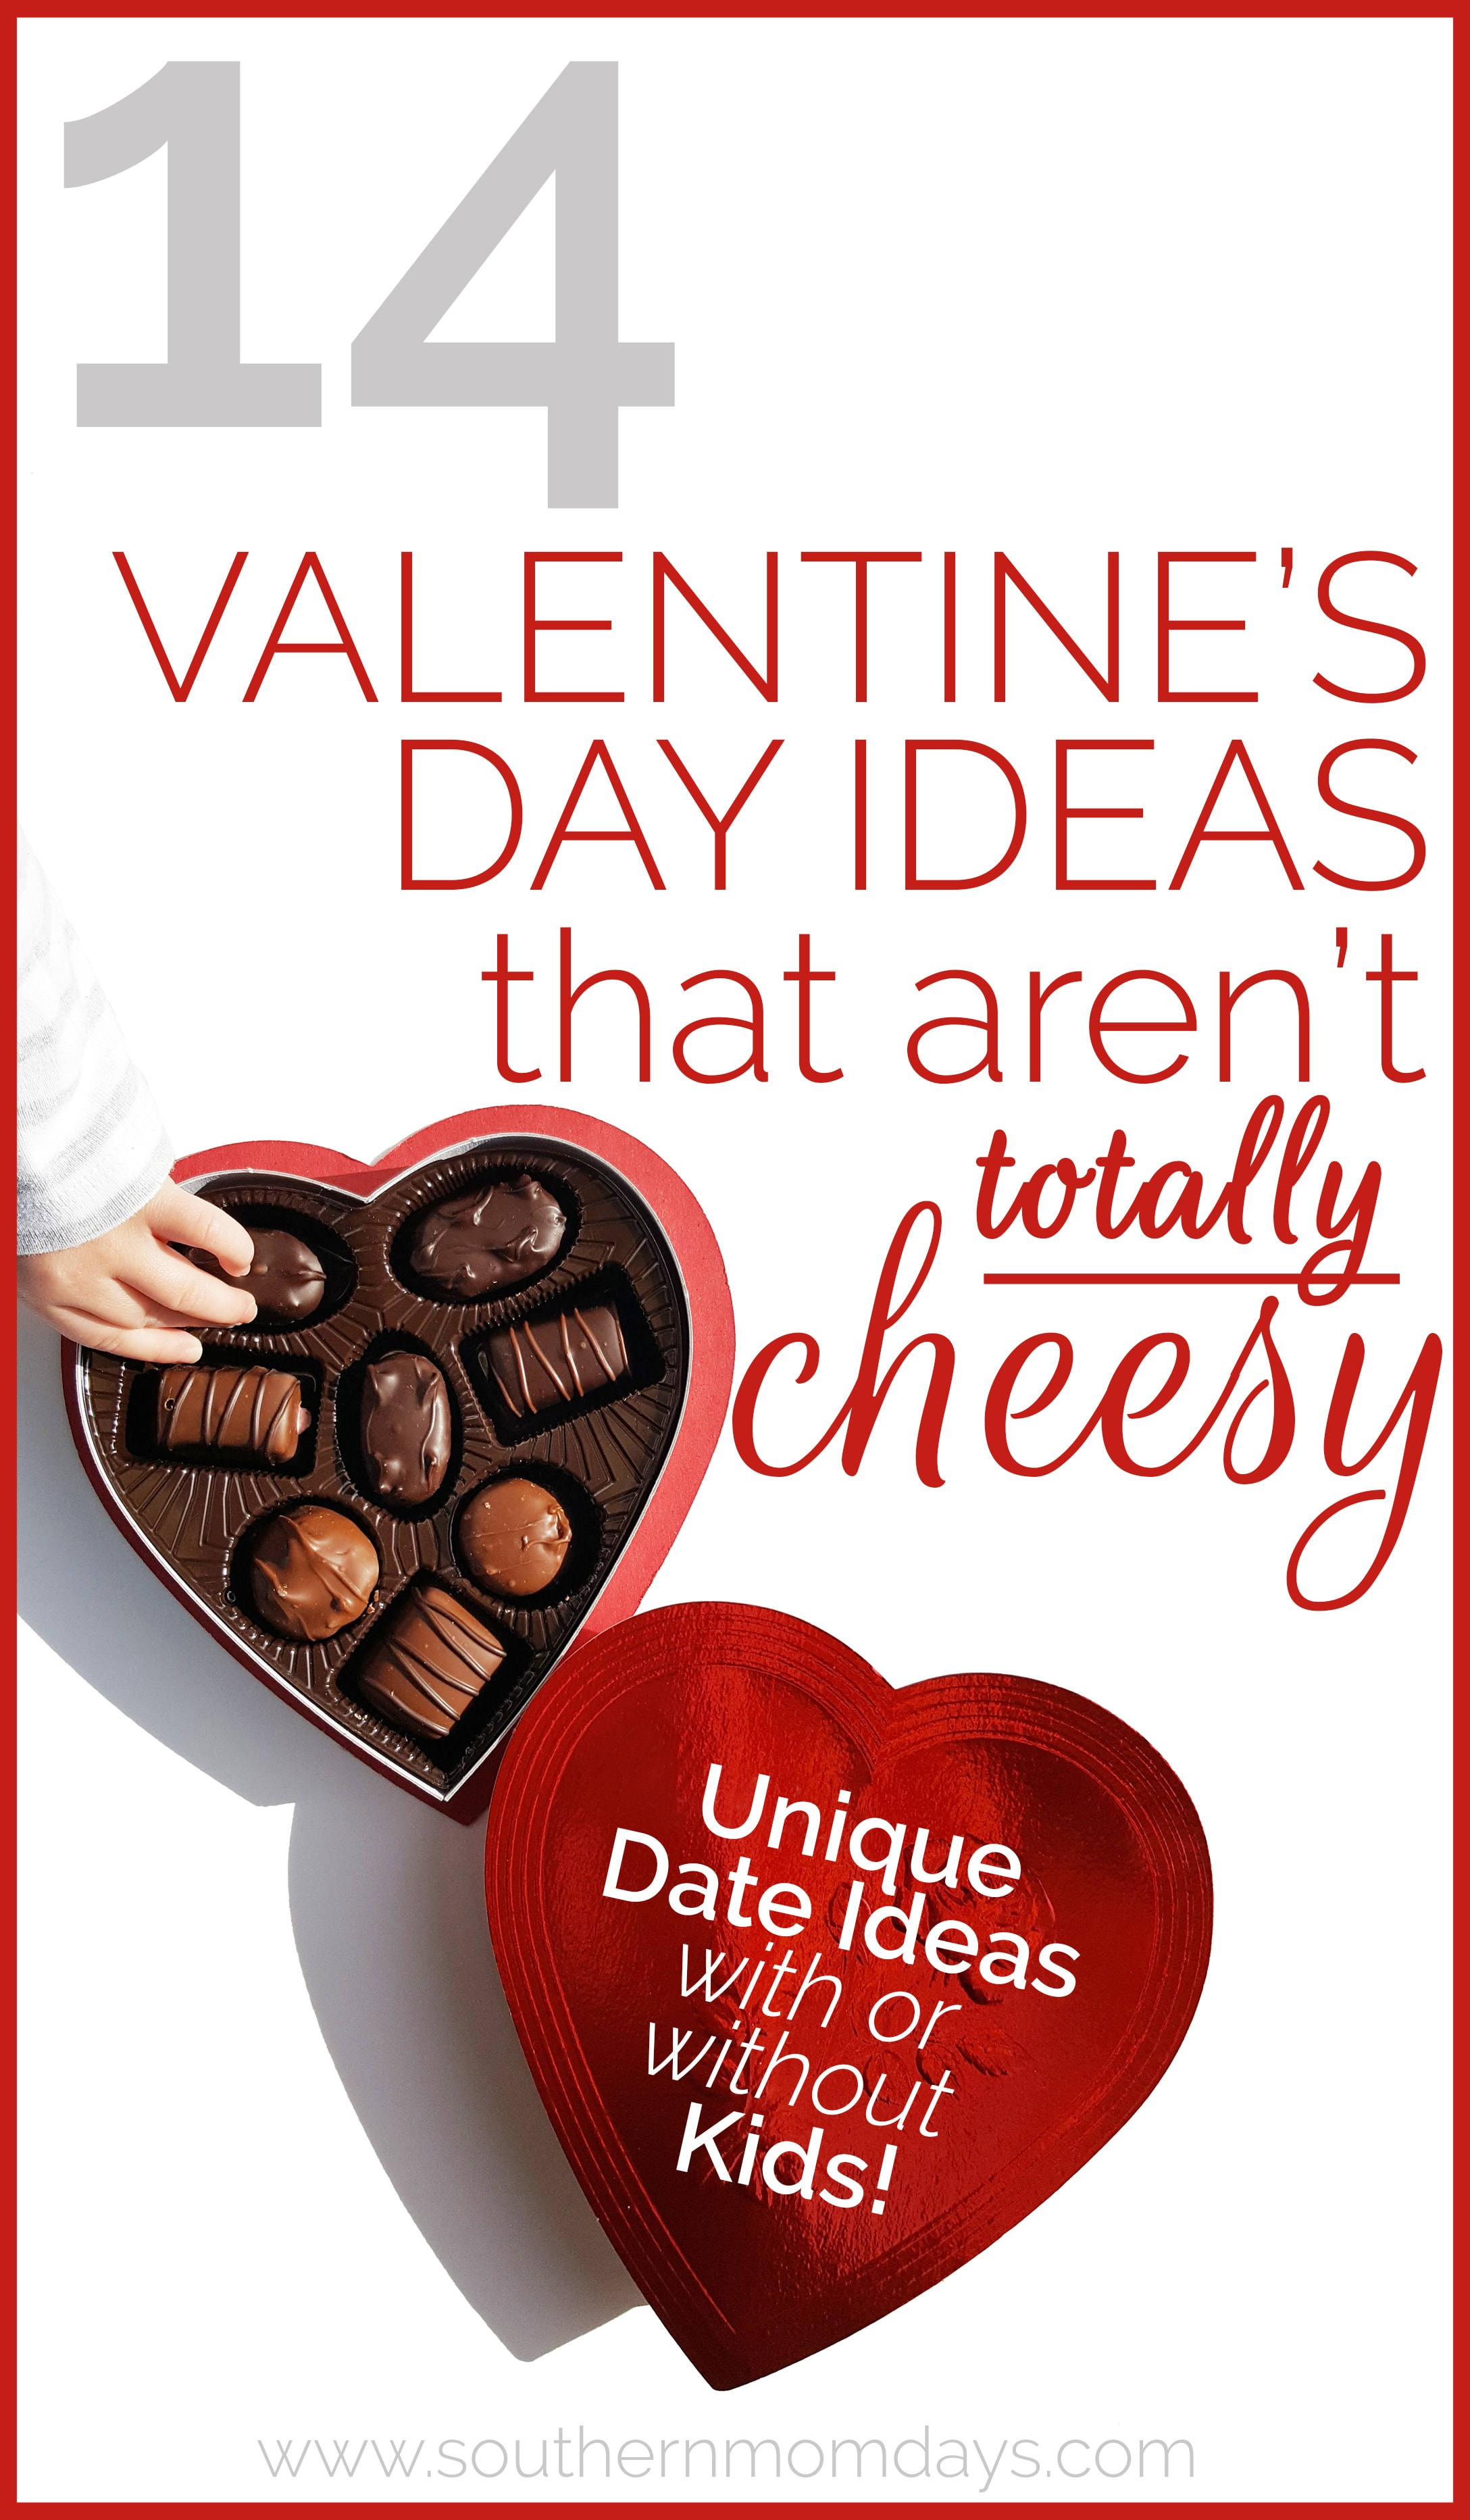 14 Valentine's Day Ideas That Aren't Totally Cheesy, including 10 Valendtine's Day date ideas with or without kids and 4 Valentine's Day gifts for him and her, featured on the Southern Momdays blog